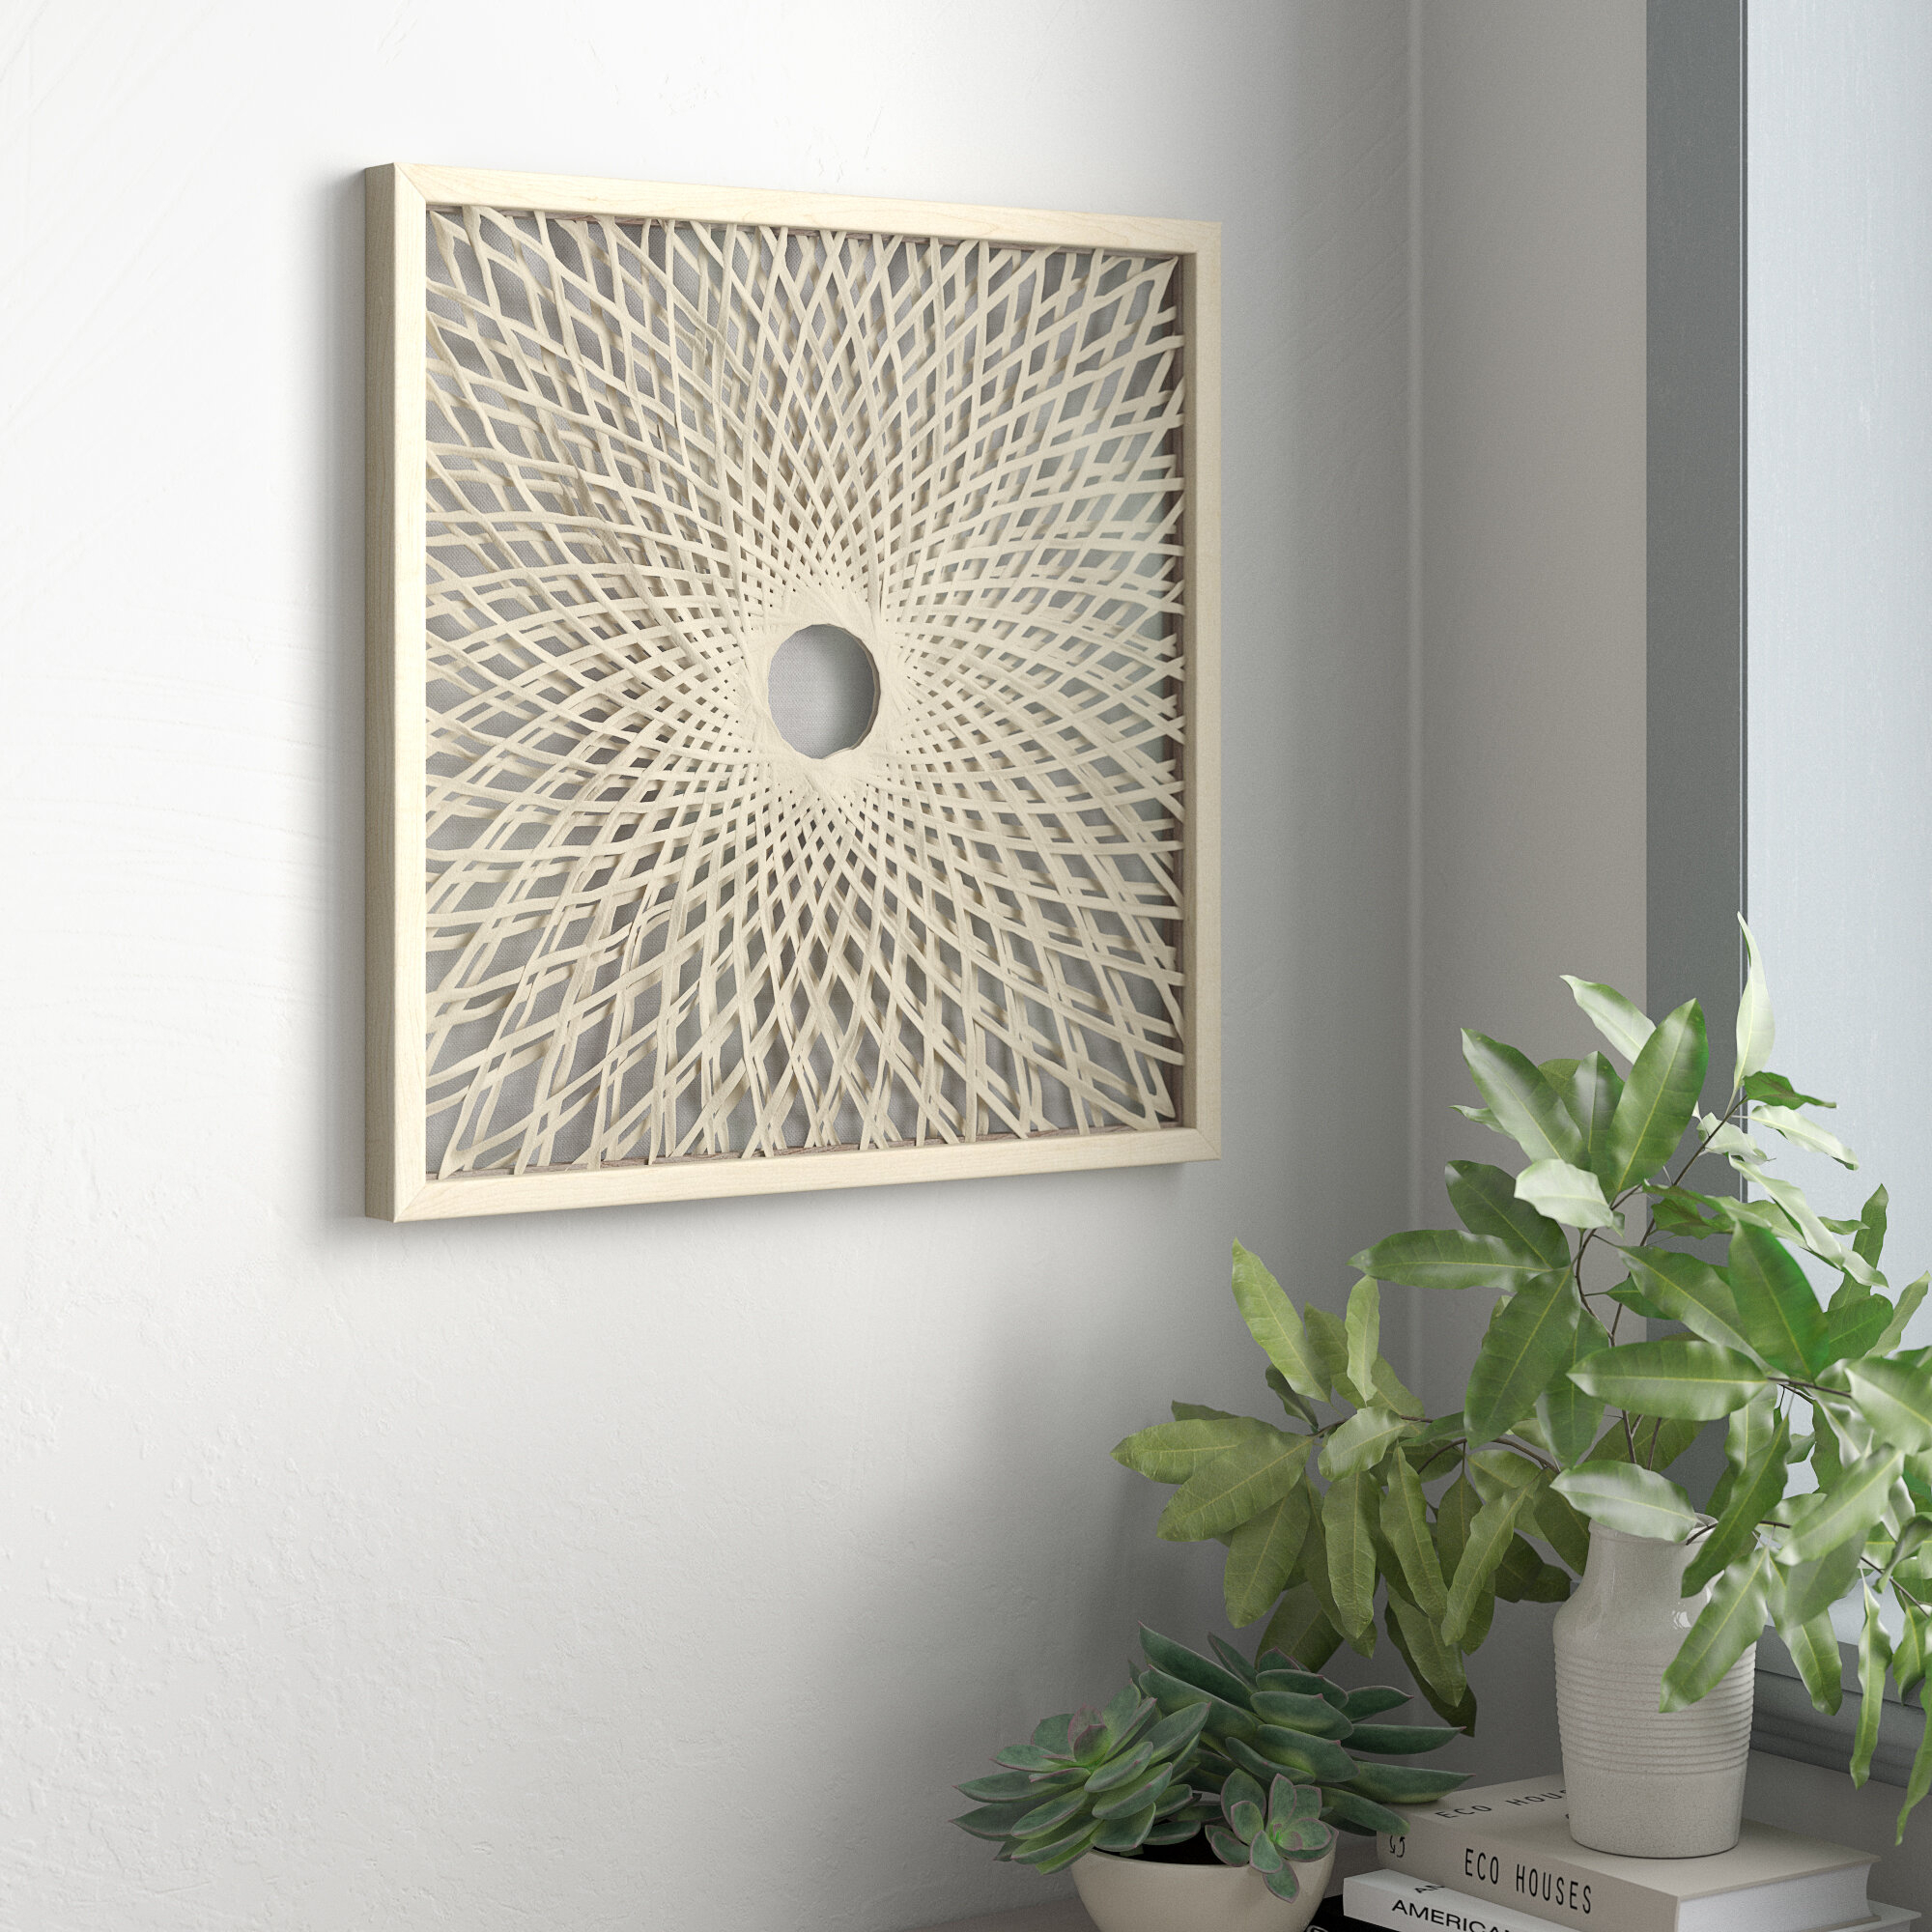 Wayfair With 4 Piece Handwoven Wheel Wall Decor Sets (View 18 of 20)